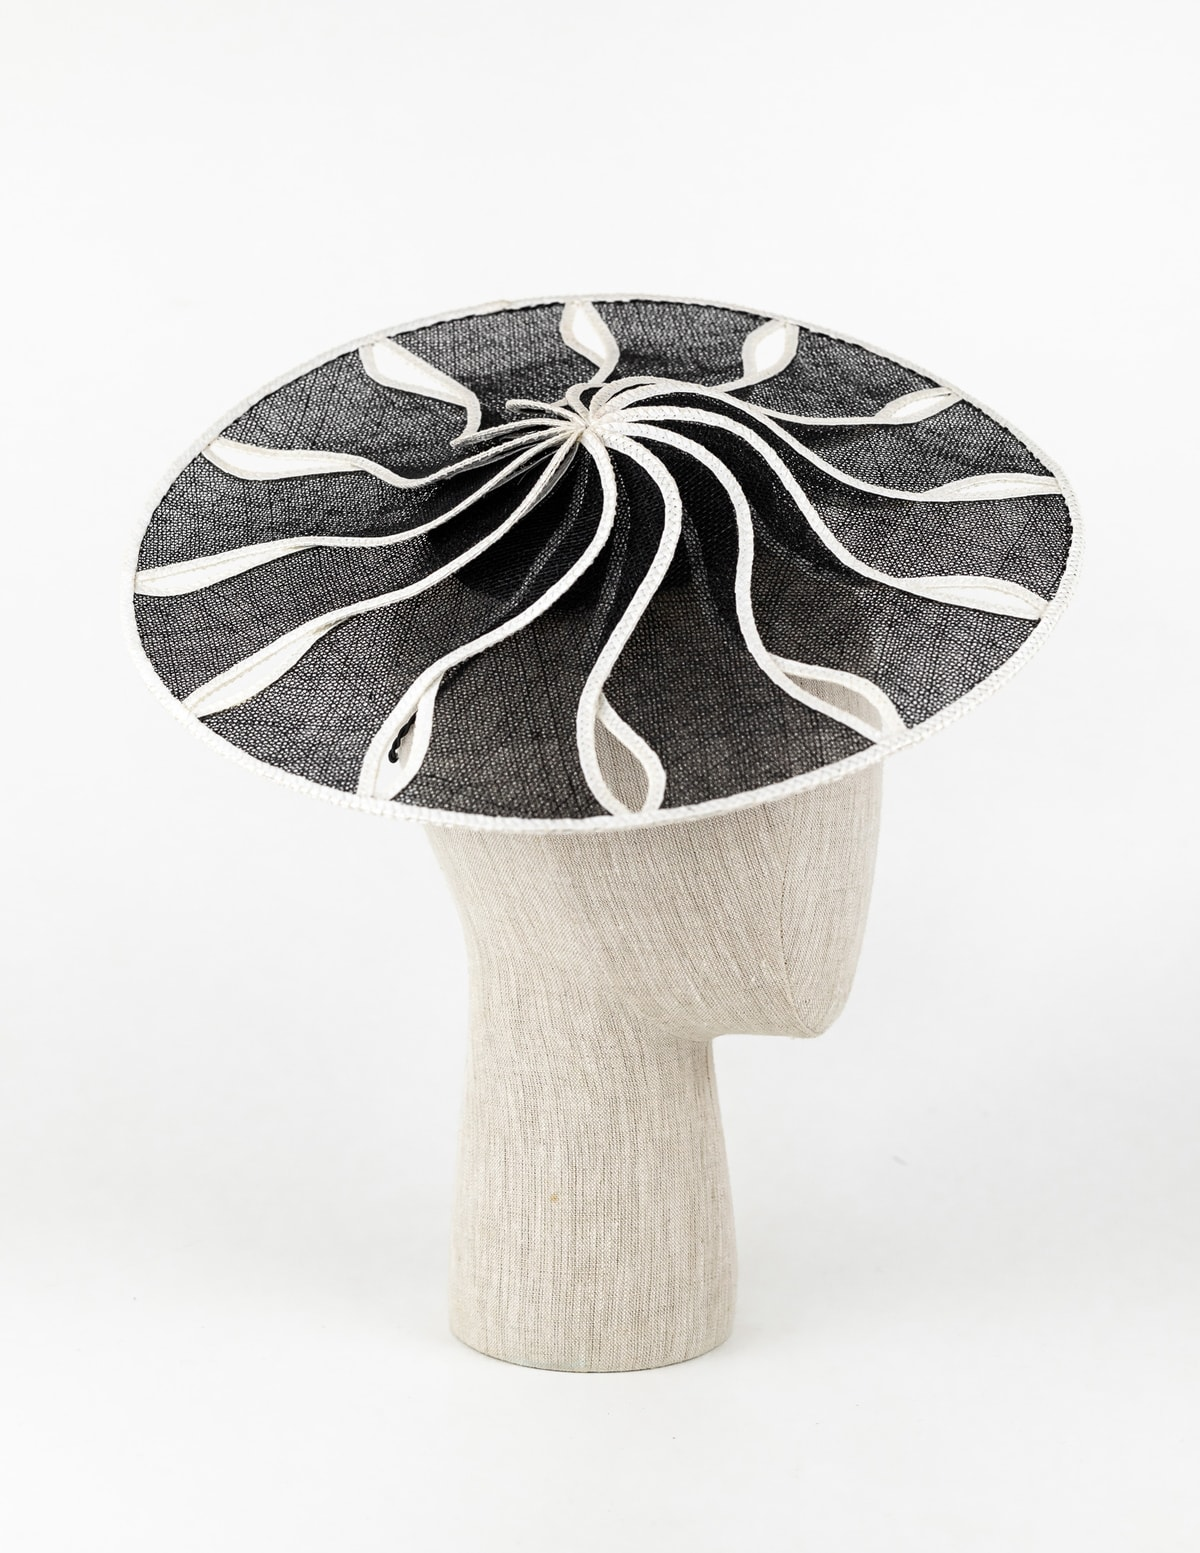 Black and white sinamay saucer hat $495